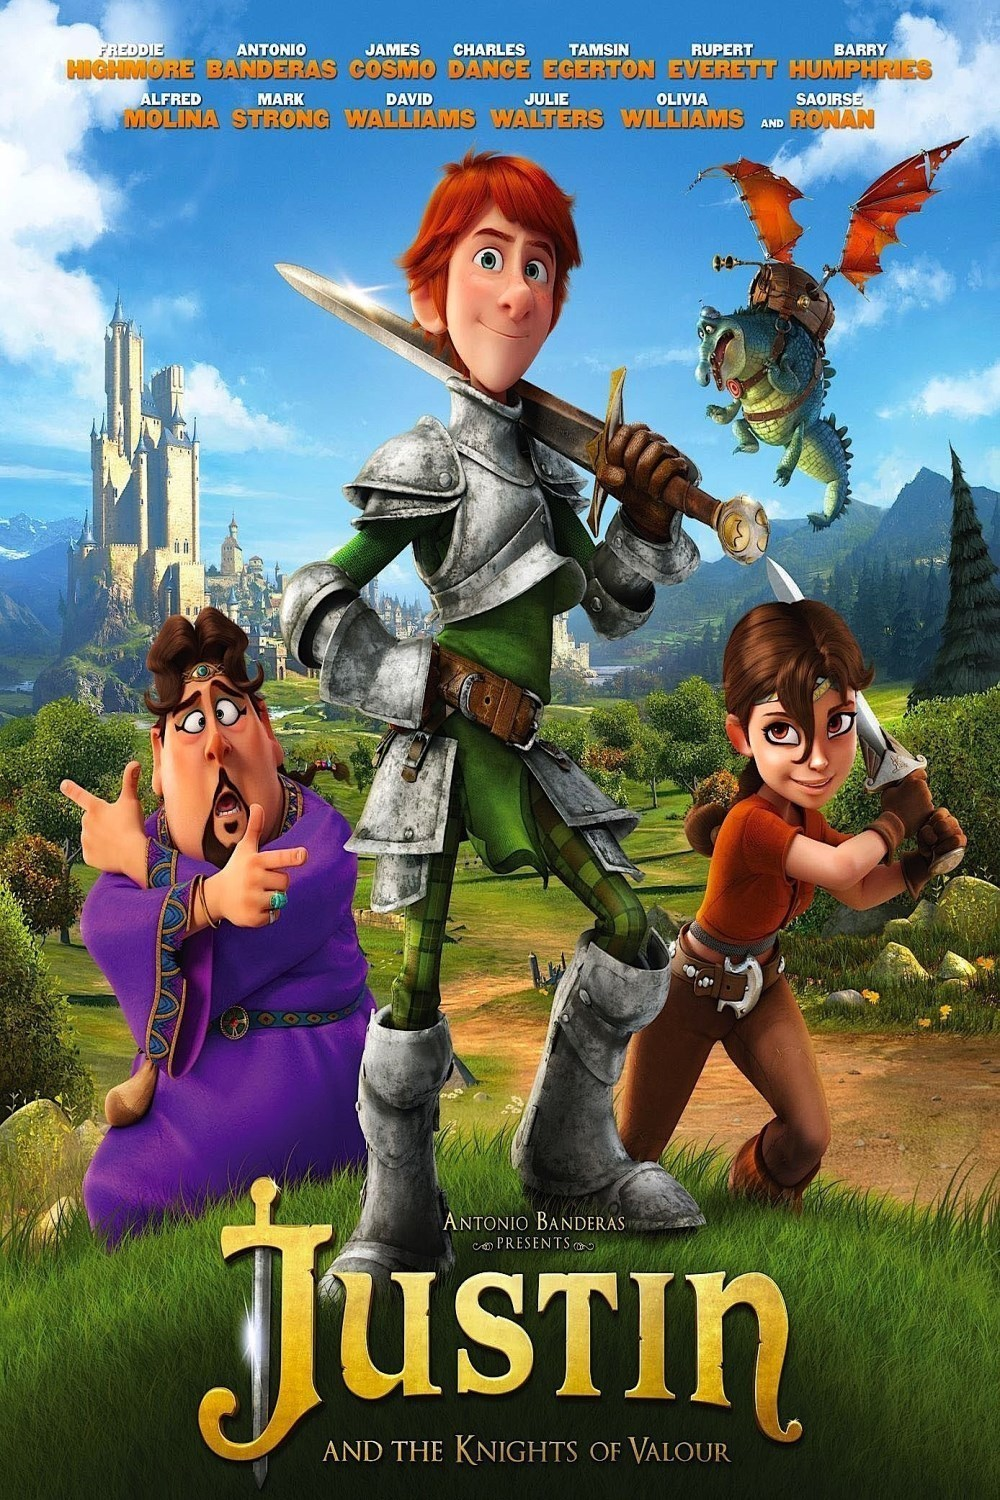 Justin And The Knights Of Valour Wallpapers Movie Hq Justin And The Knights Of Valour Pictures 4k Wallpapers 2019